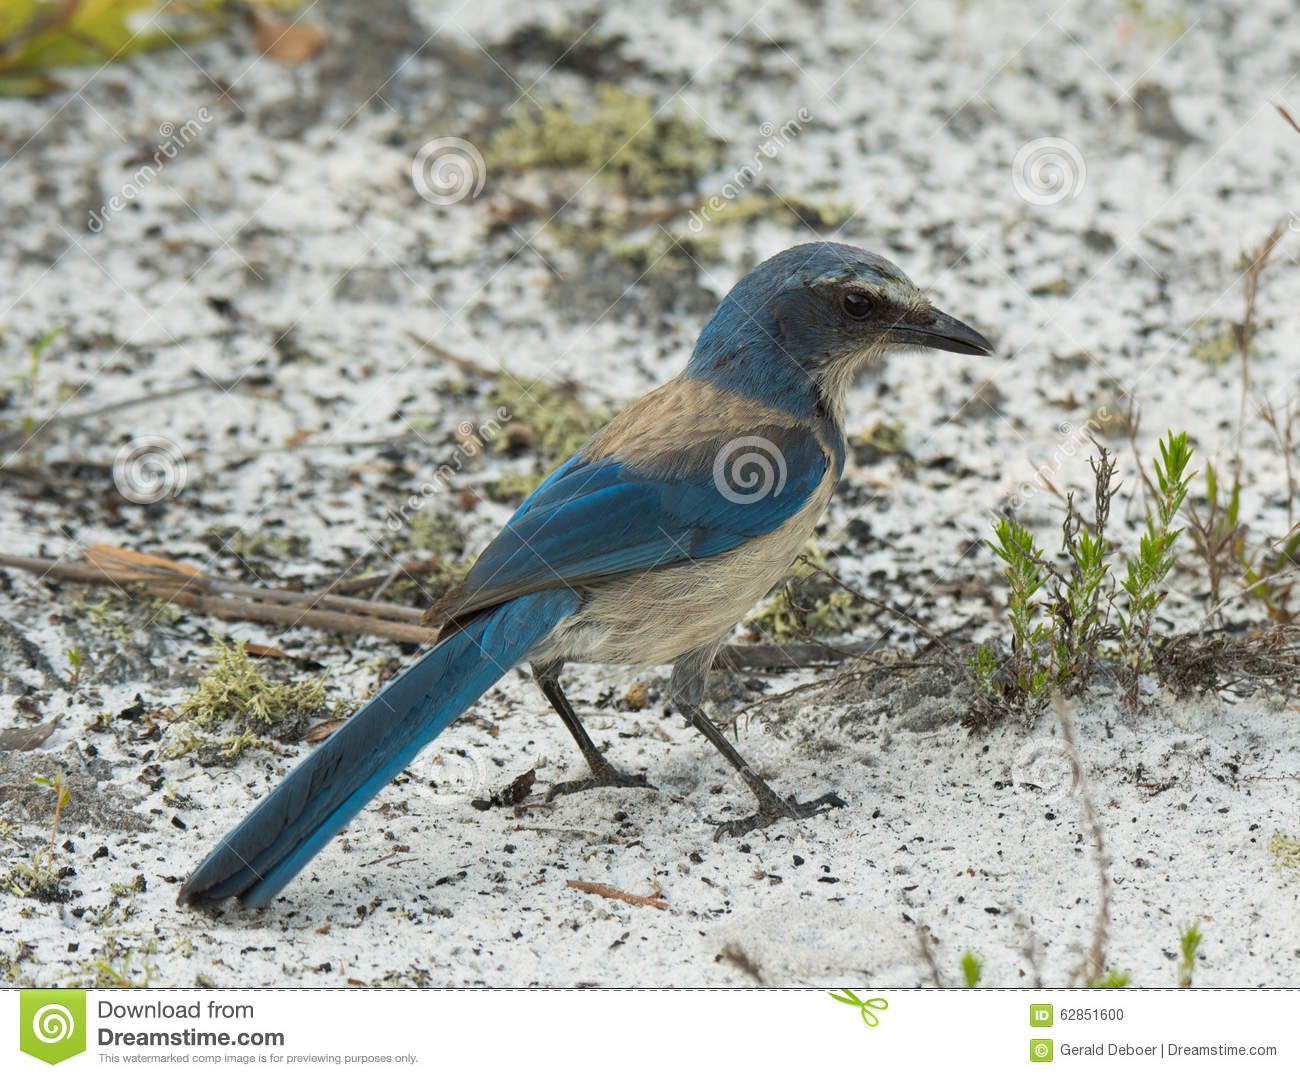 Download Florida Scrub Jay stock photo. Image of outdoors, birdwatching - 62851600